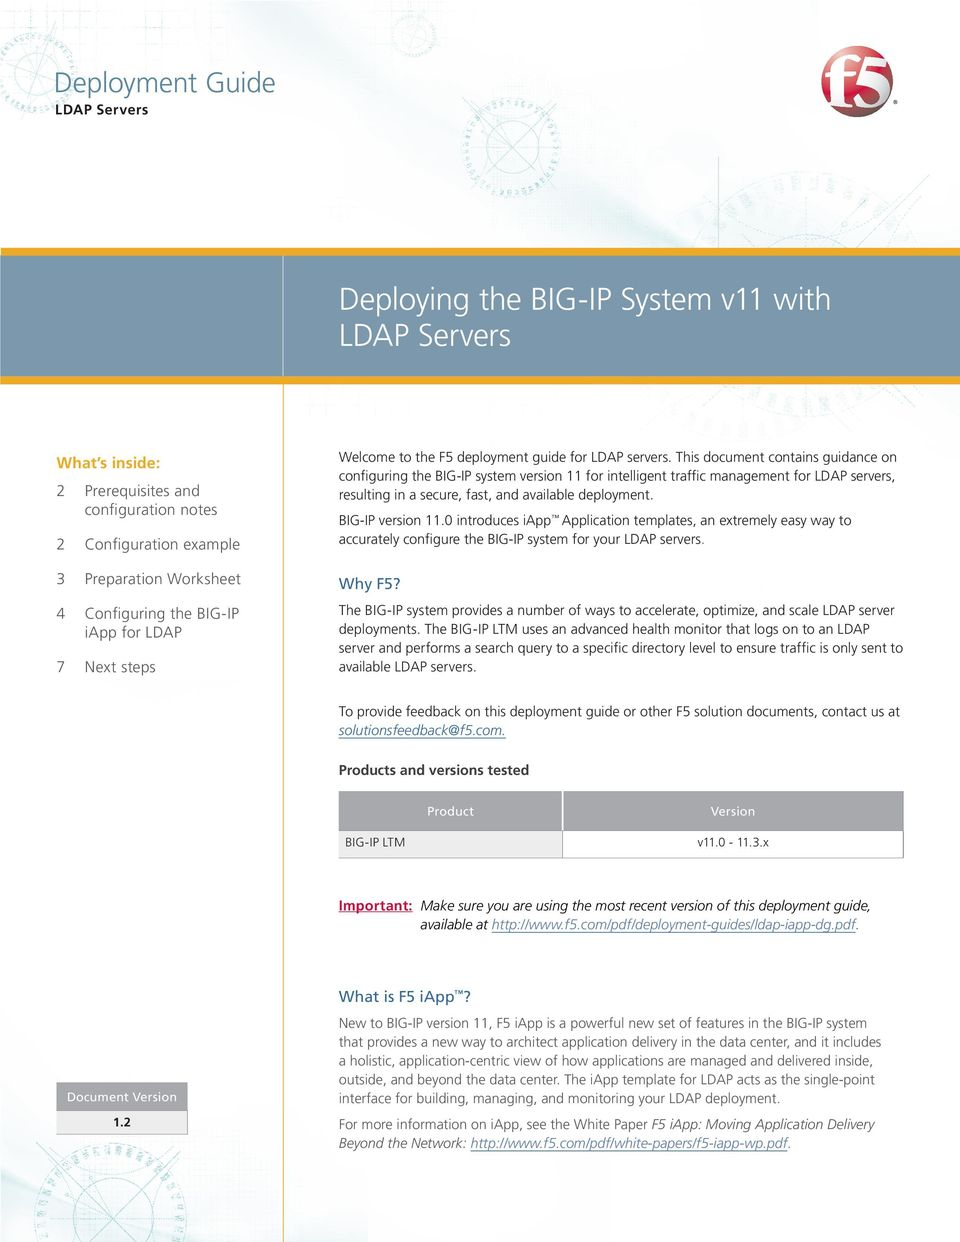 This document contains guidance on configuring the BIG-IP system version 11 for intelligent traffic management for LDAP servers, resulting in a secure, fast, and available deployment.